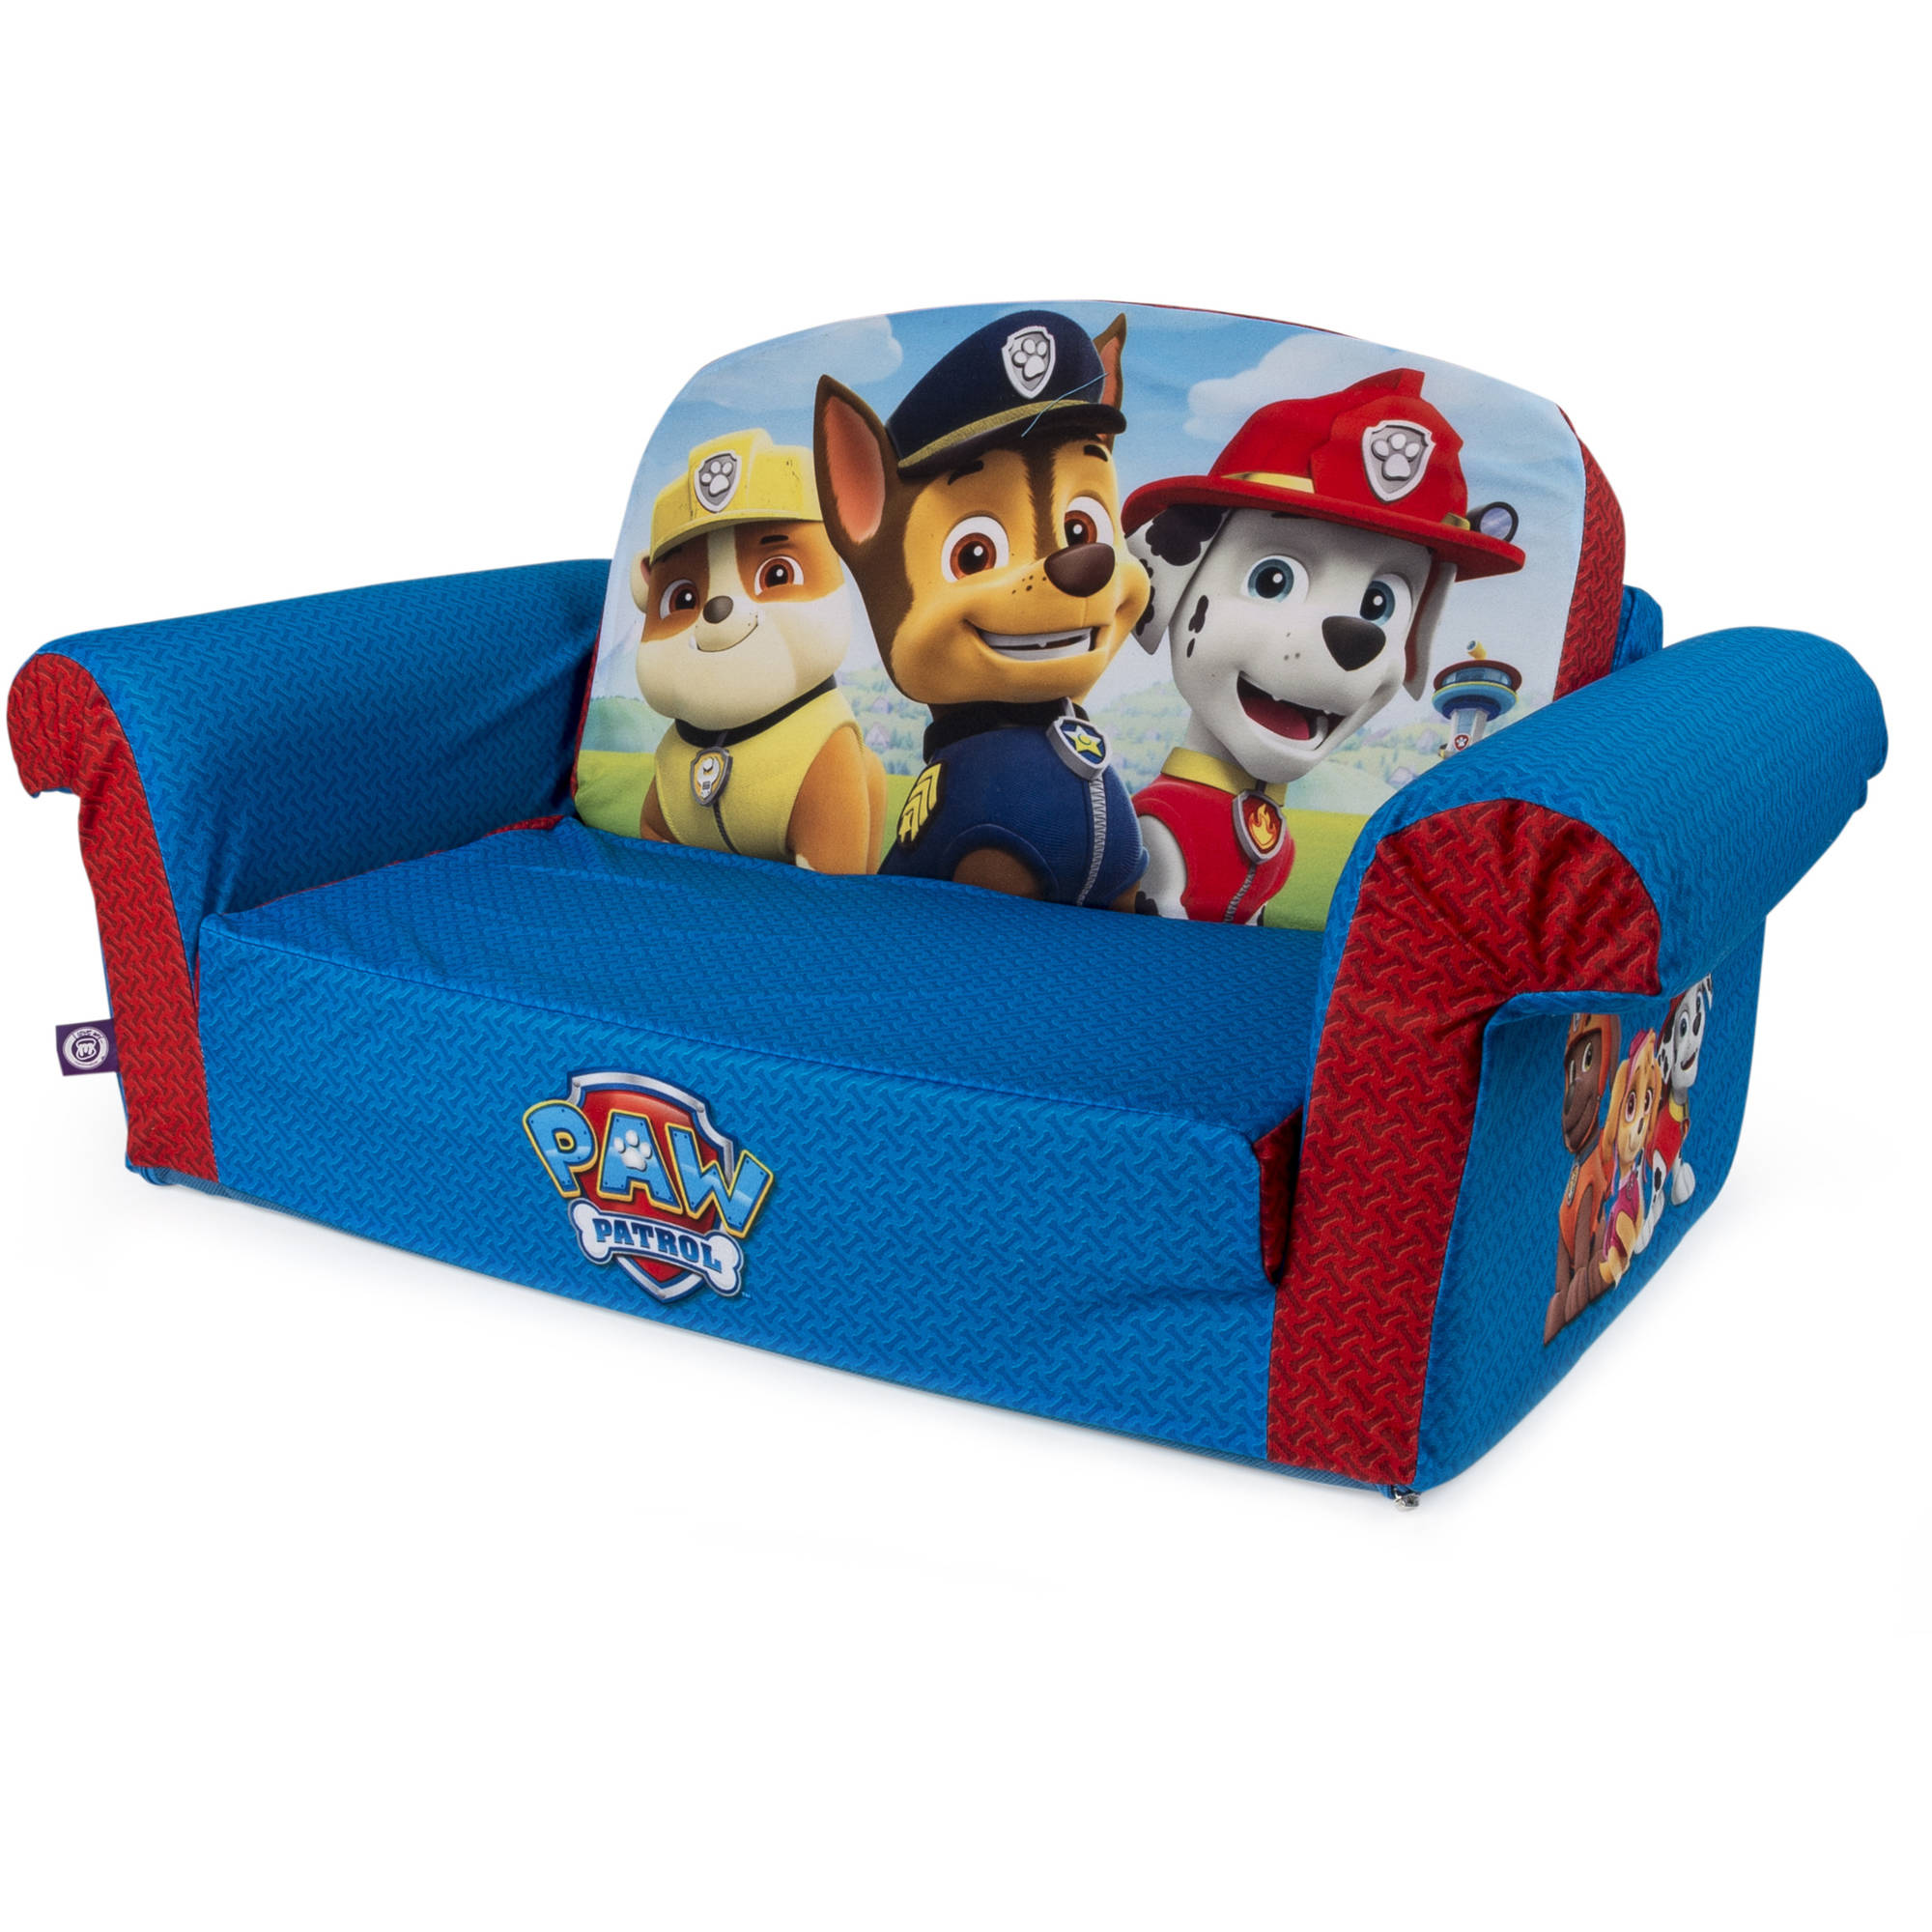 Marshmallow Furniture Children S 2 In 1 Flip Open Foam Sofa Nickelodeon Paw Patrol By Spin Master